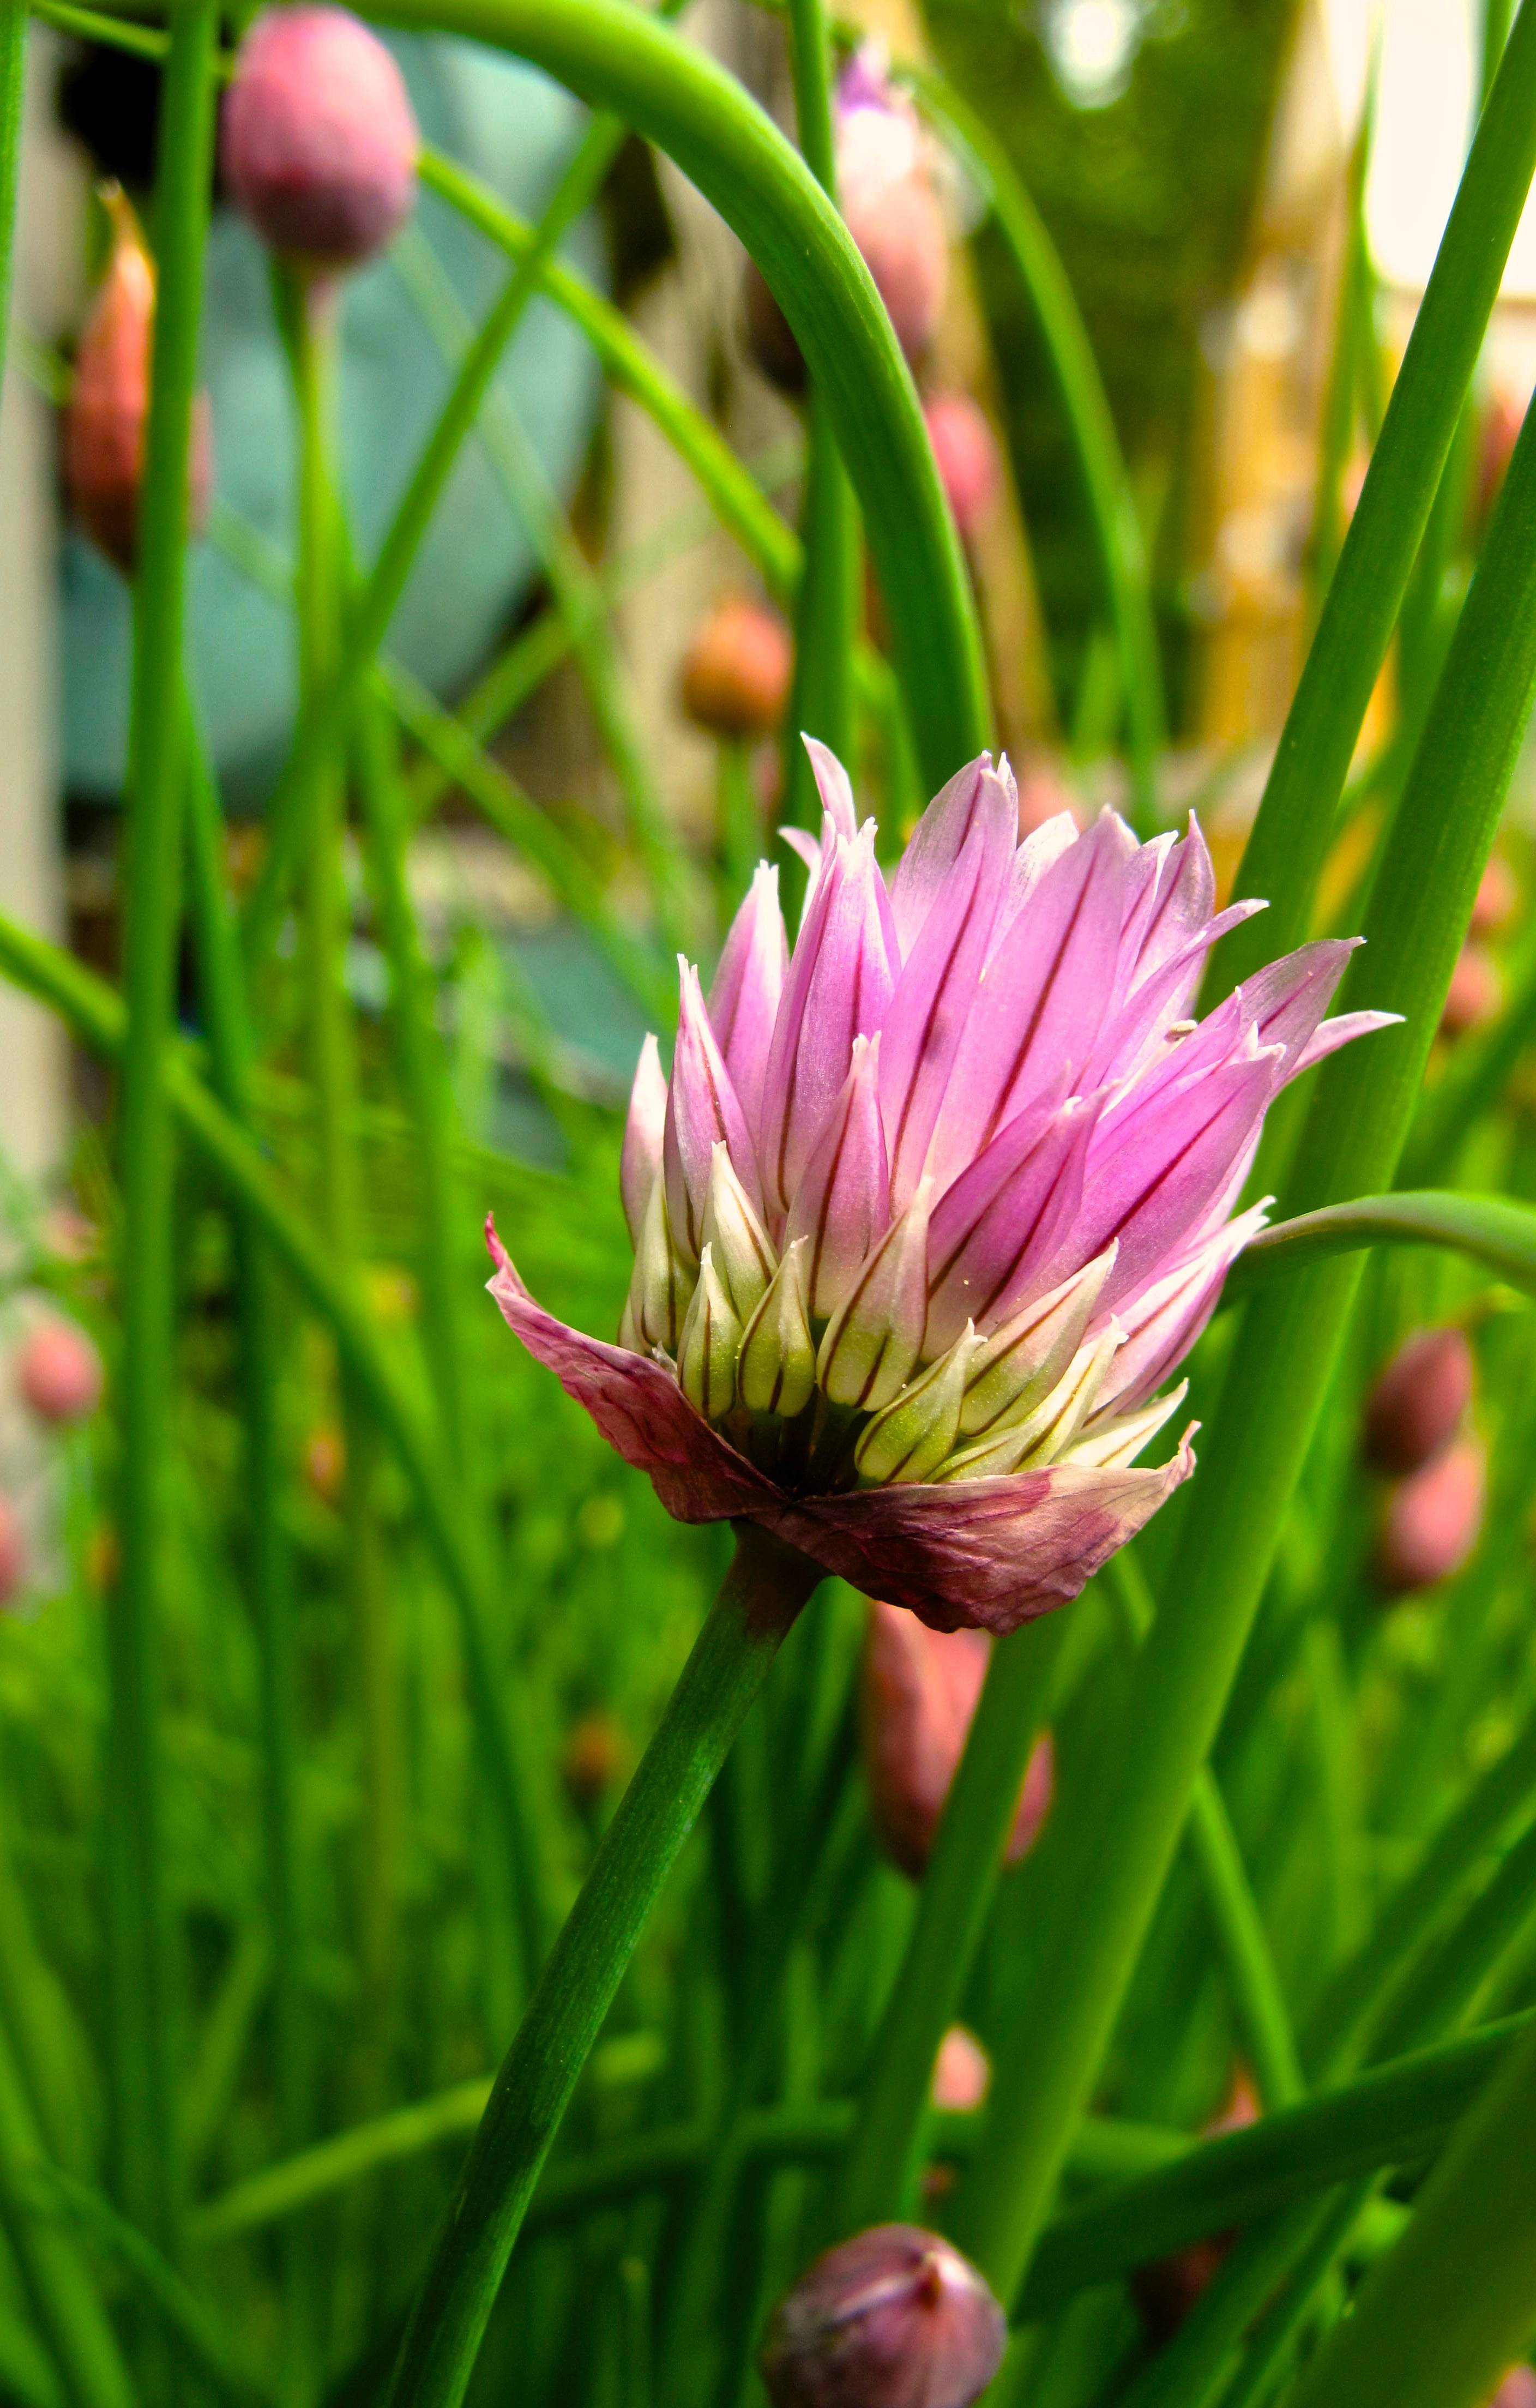 They are lovely to look at but the plant's flavor, like this chive, declines and changes once it begins to flower. Extend the harvest by pinching back the plants to keep them from blooming.